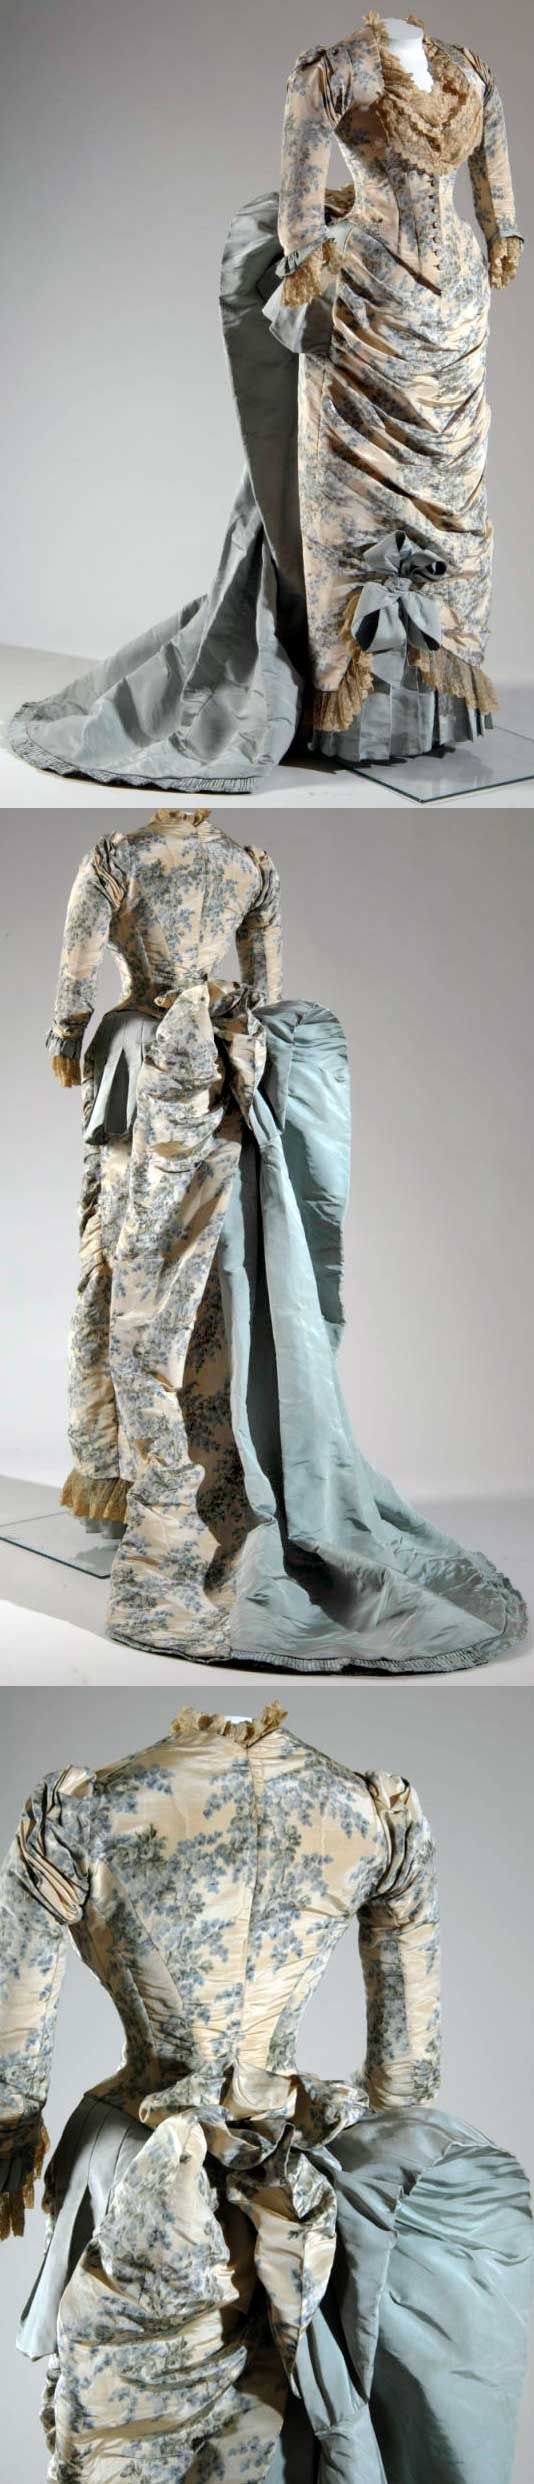 Evening dress, Worth, 1883. Light blue white floral silk moiré. Bodice has scooped neckline, pleating at shoulders, 3/4 sleeves. Lace trimming at neckline cuffs; additional light blue faille trimming at cuffs. Center front button closure. Skirt has pleated front panel. Large light blue faille bow near bottom hem. Large bustle uses blue white moir on proper left side and blue faille on proper right; bustle extends to become a train. Skirt hem trimmed w/lace pleated blue faille.